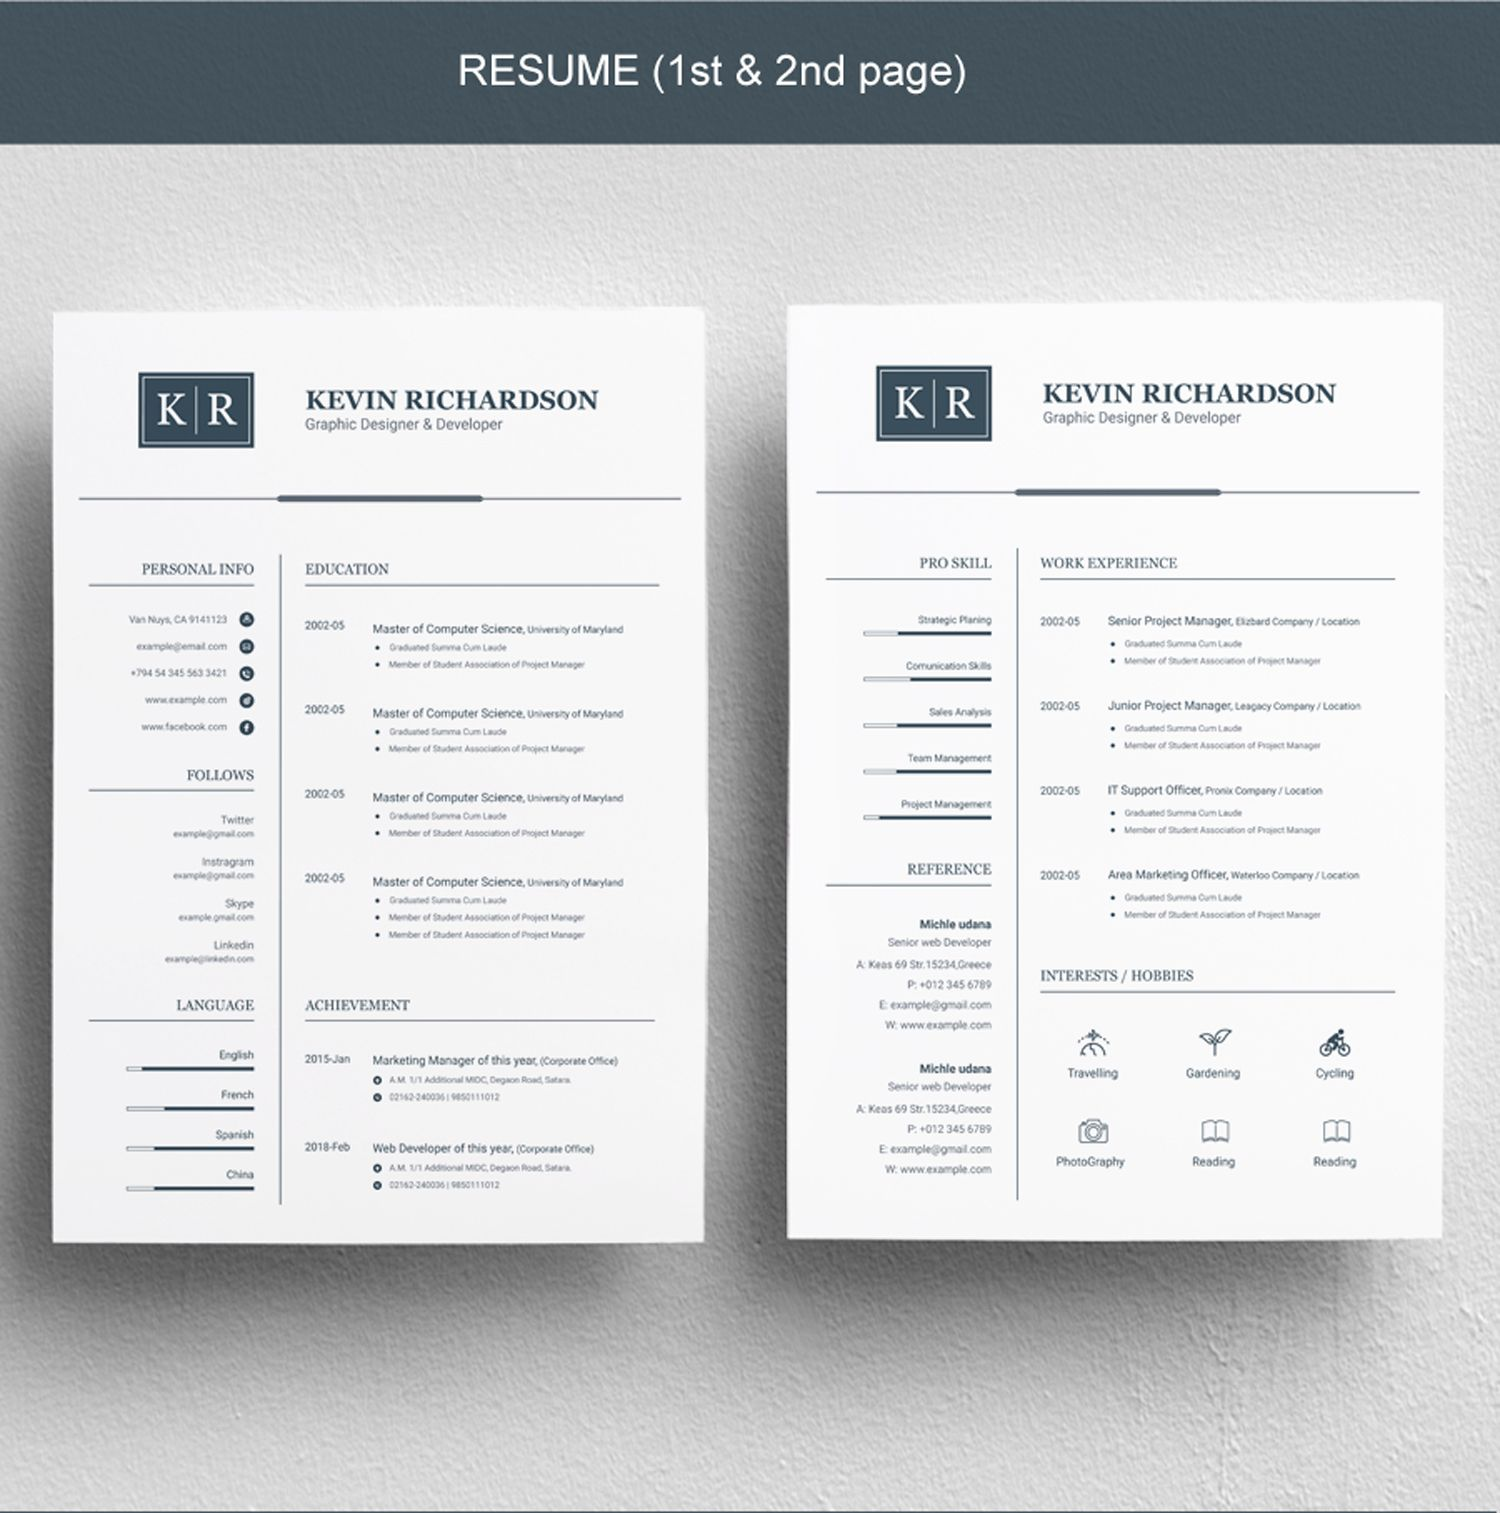 Clean Resume Template Resume/CV Template A4/Doc Resume